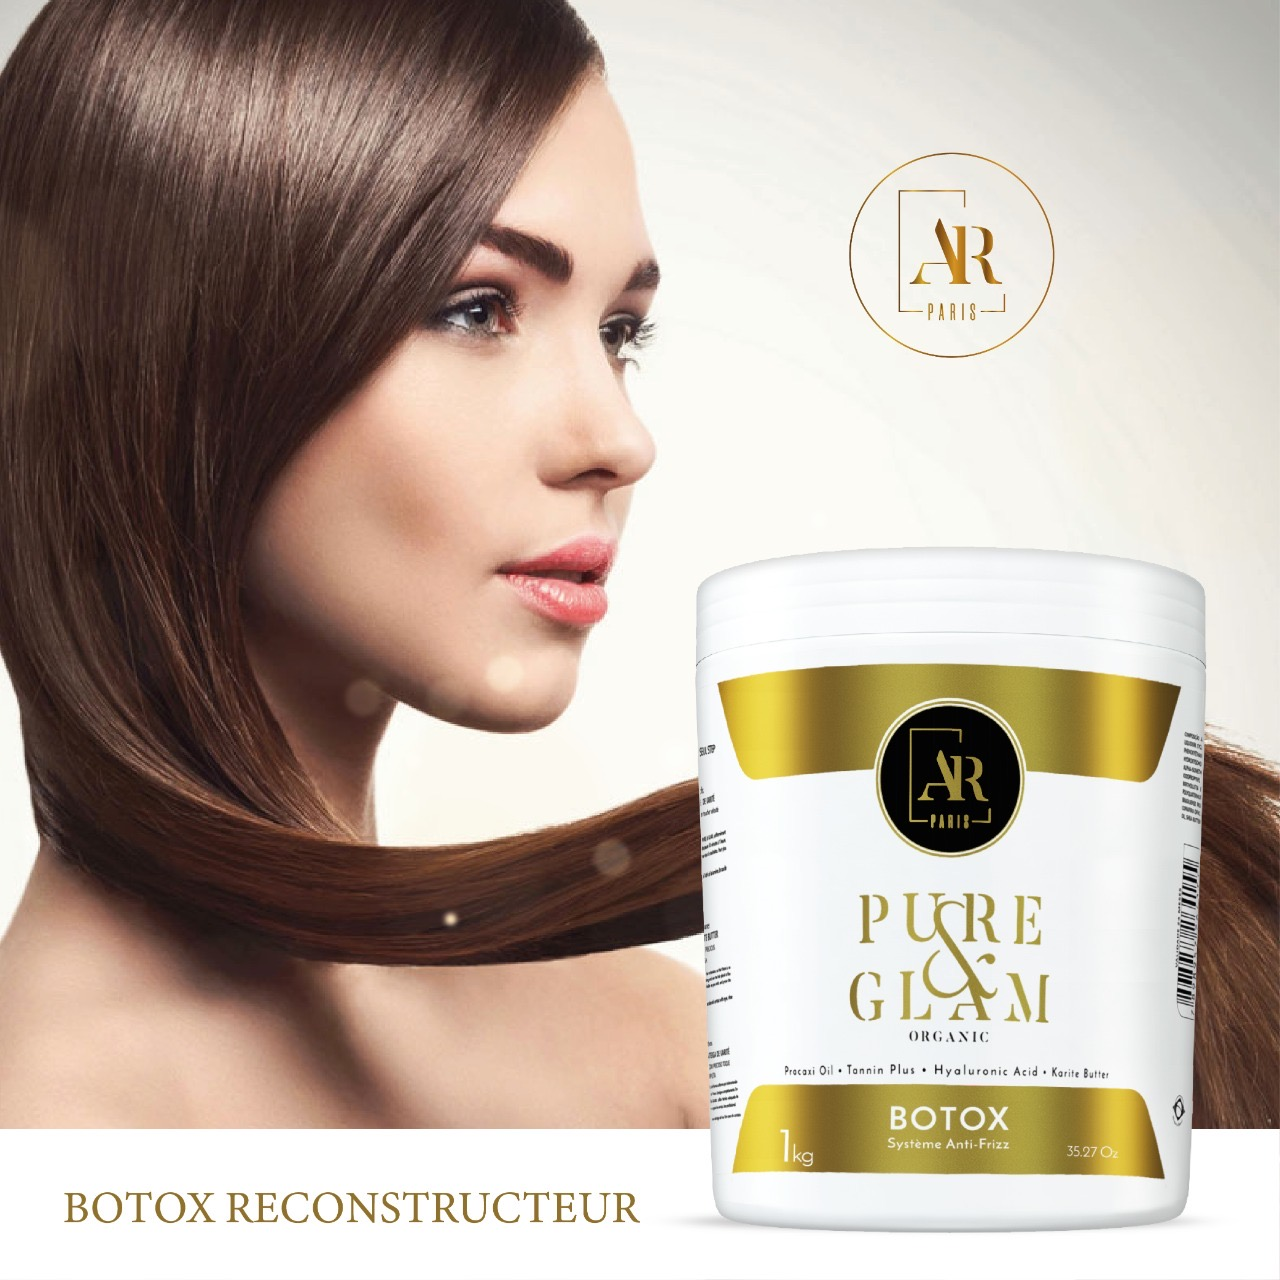 You are currently viewing Botox Pure & Glam AR Paris 1 KG